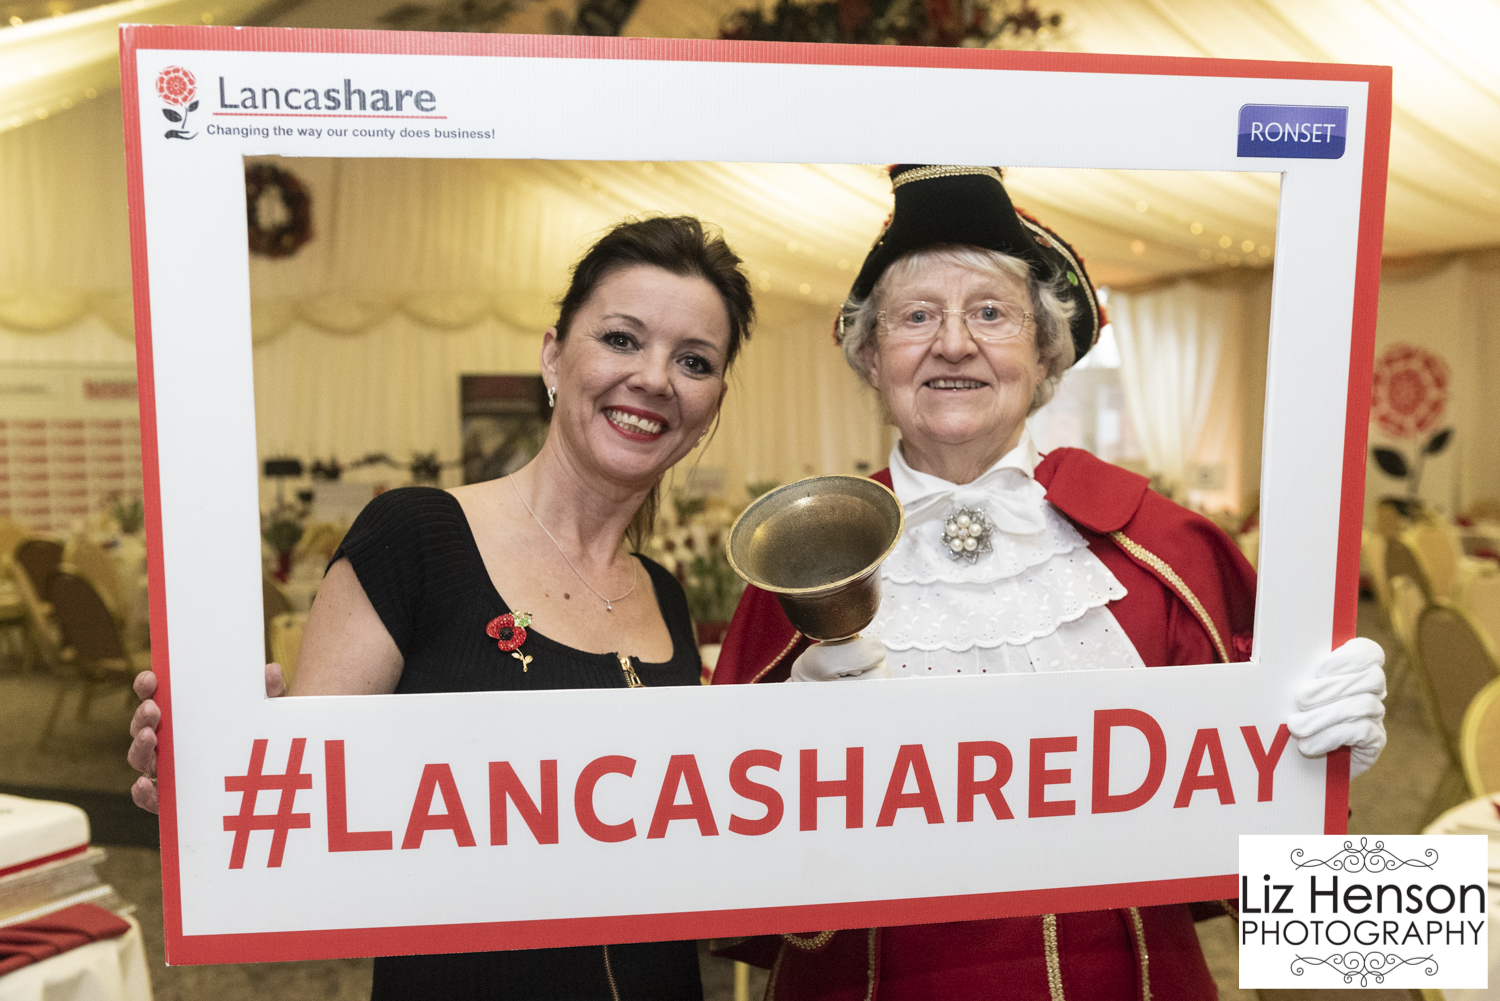 Lancashare Day 2019 is finally here!!